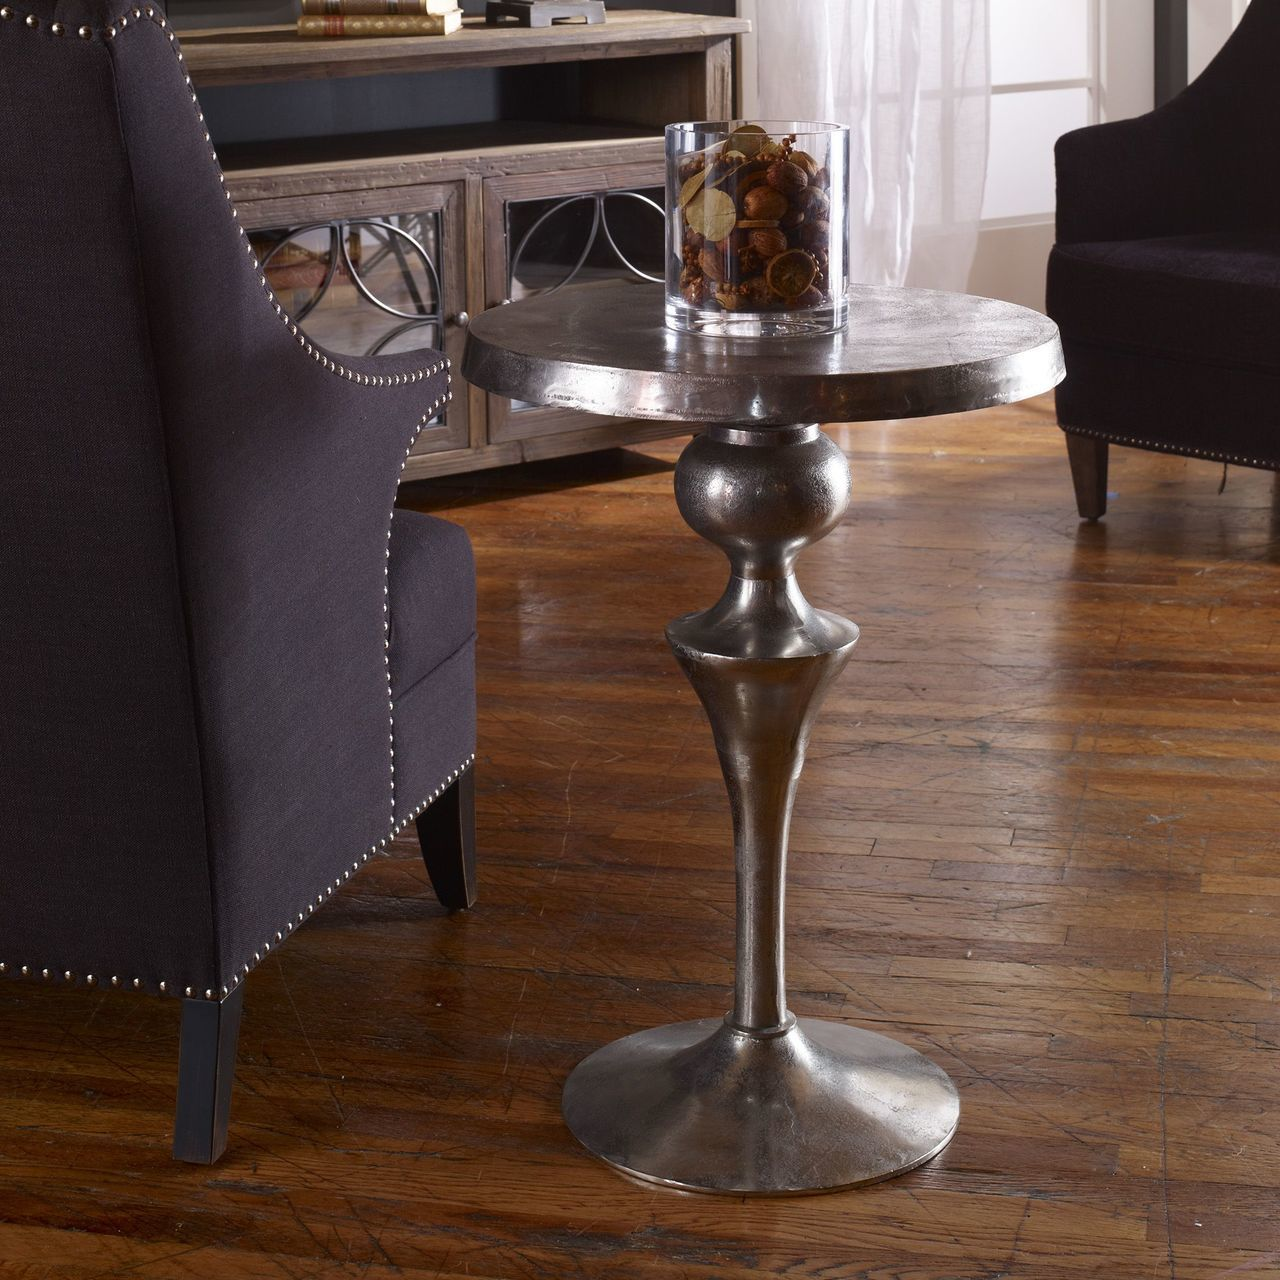 uttermost noland aluminum accent table rug fashion dice kids nic chairside industrial end patio chair covers wood pedestal carpet door threshold mid century leather sofa make your